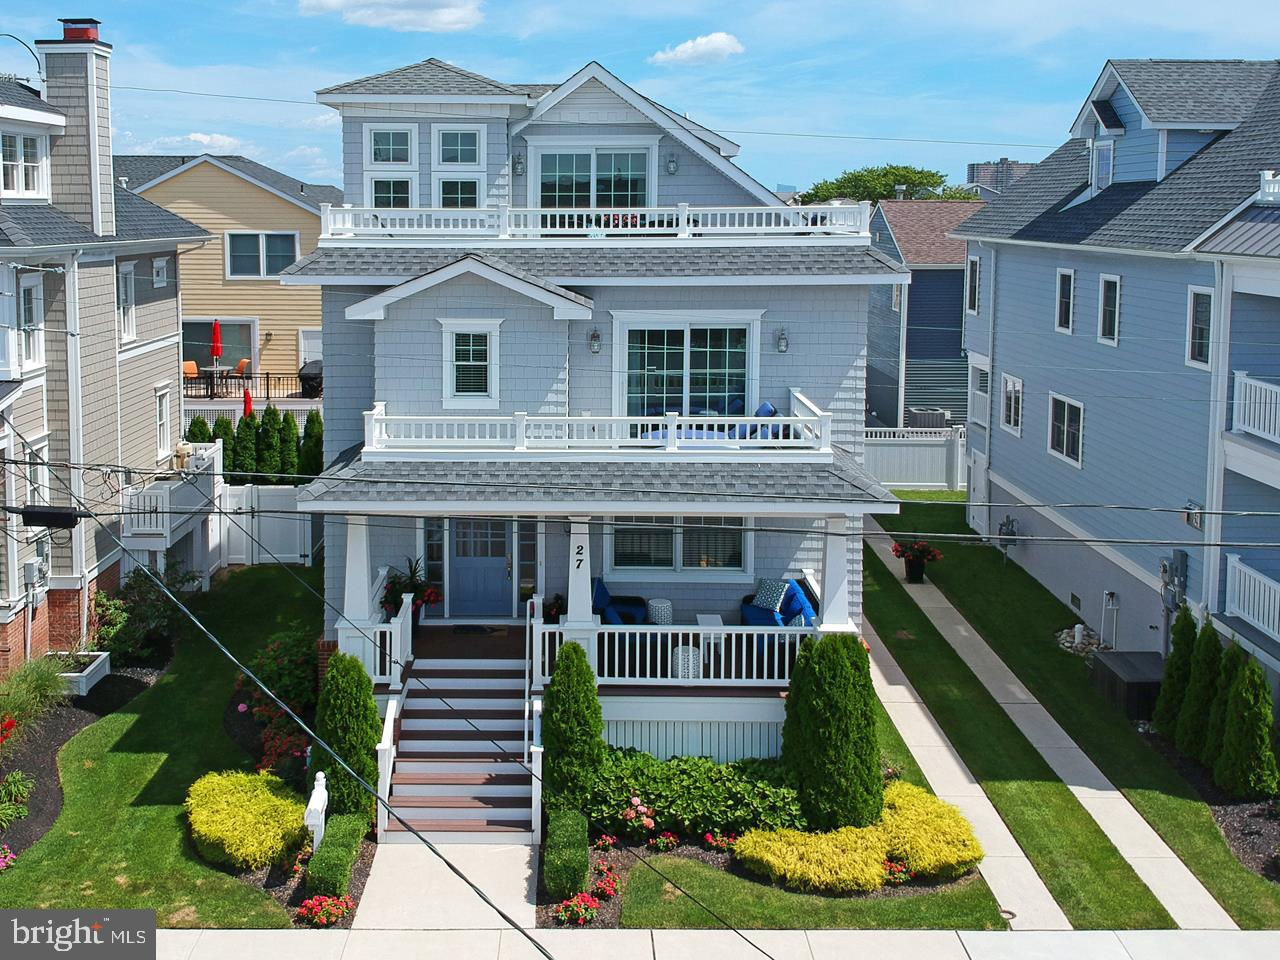 27 N MANOR AVENUE, LONGPORT, NJ 08403